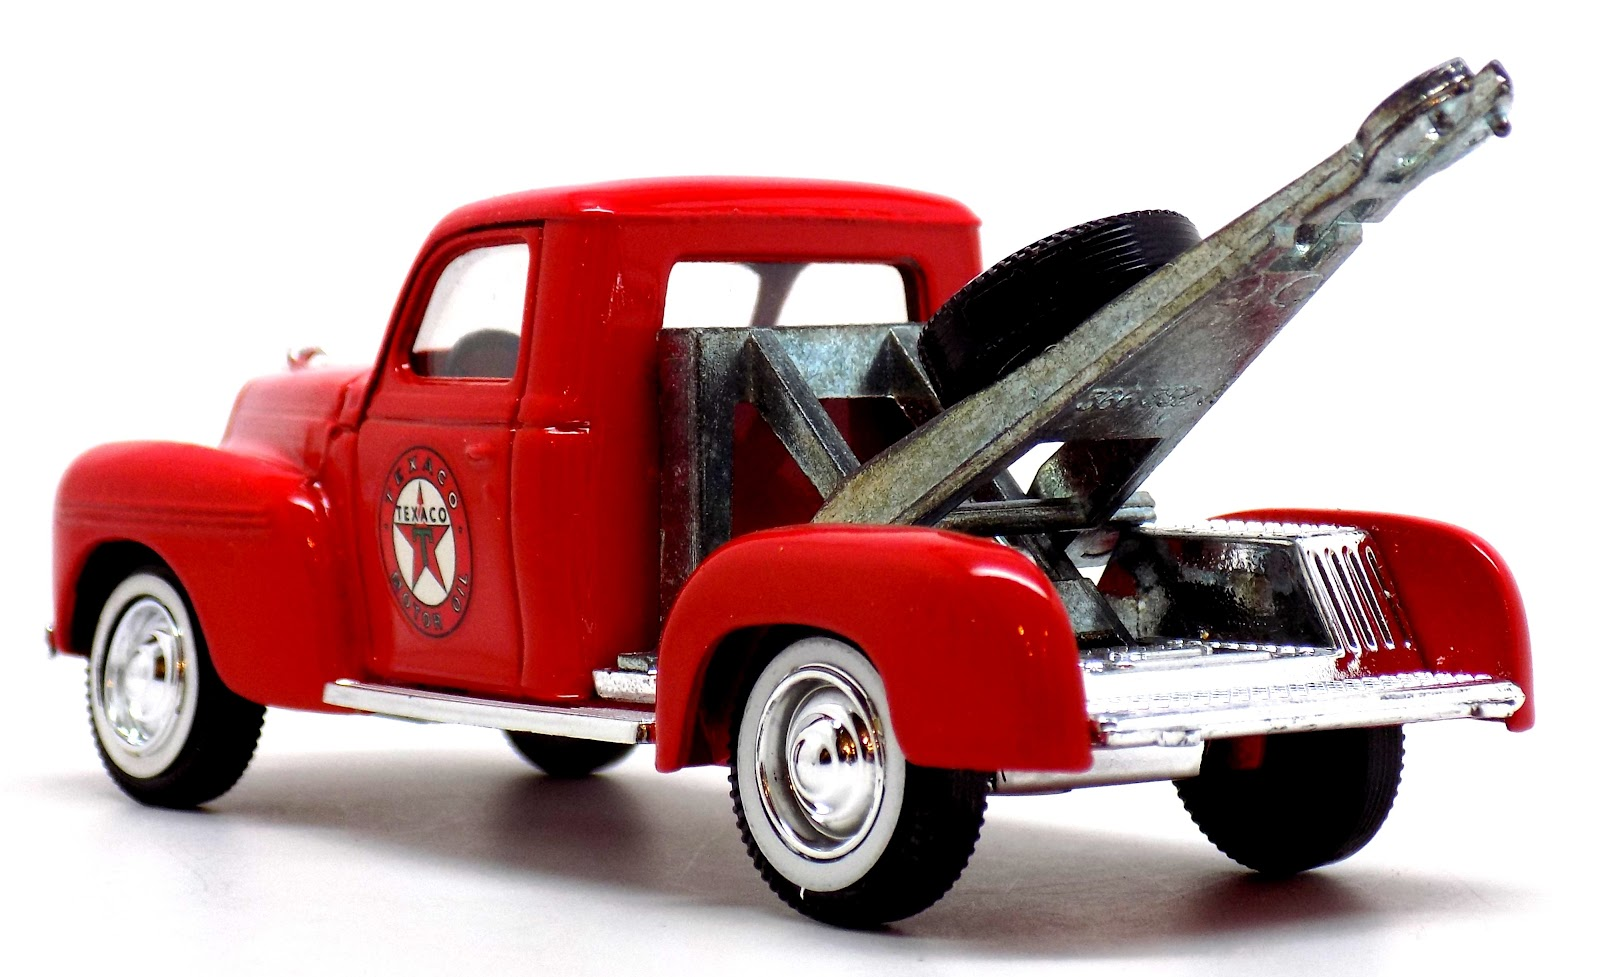 Toys And Stuff Solido 1 43 Scale Diecast 1940 Dodge Texaco Tow Truck 1942 Overtaking Valuable Storage Space It Measures 4 2 1143cm L To End Of Boom X 5 8 412cm W 508cm H Top Enjoy